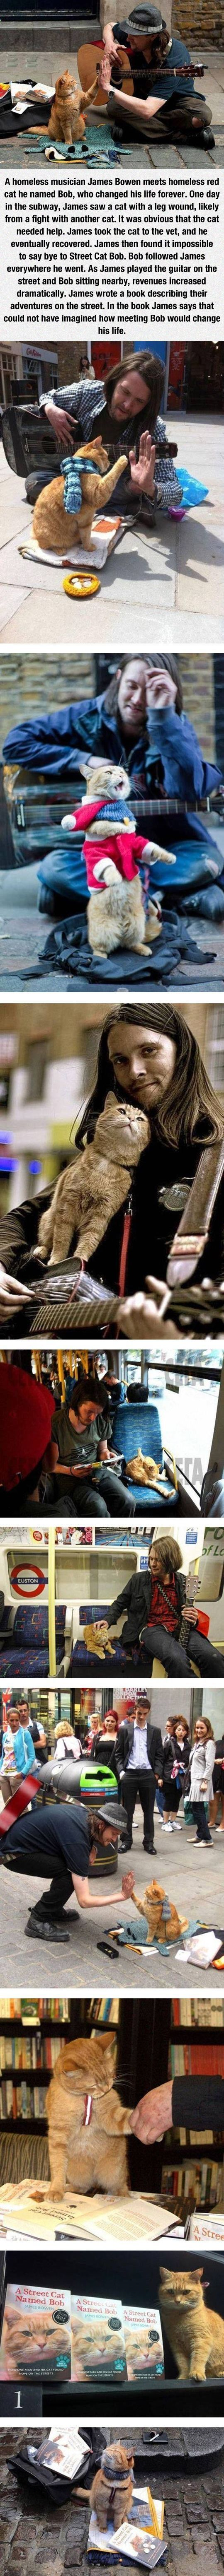 A Homeless Musician And His Cat cat story musician cool story: